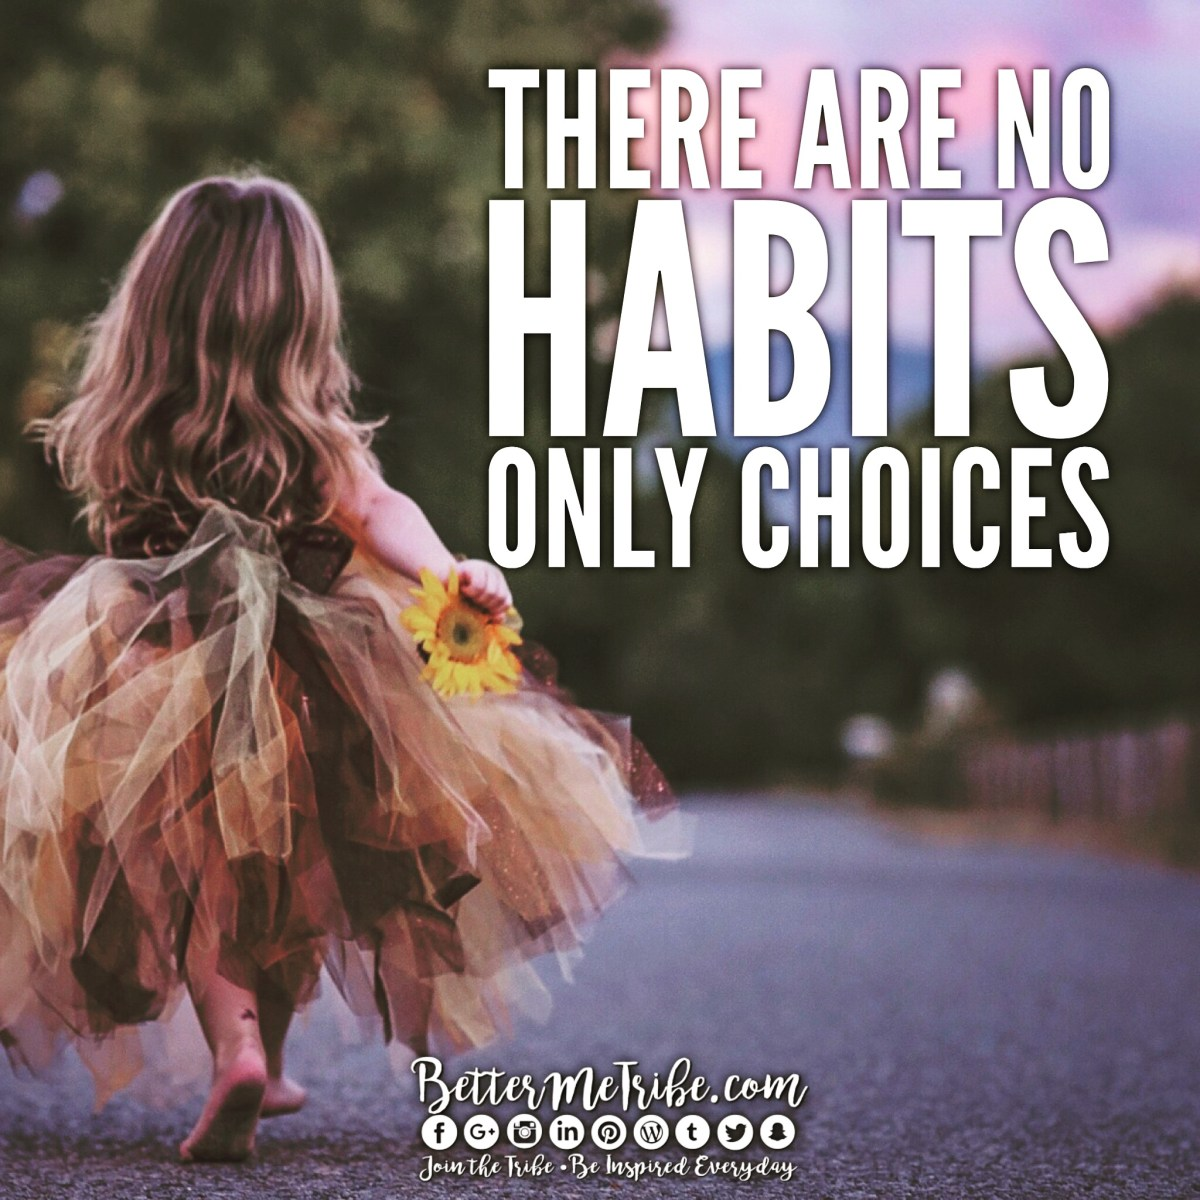 No Habits, Only Choices